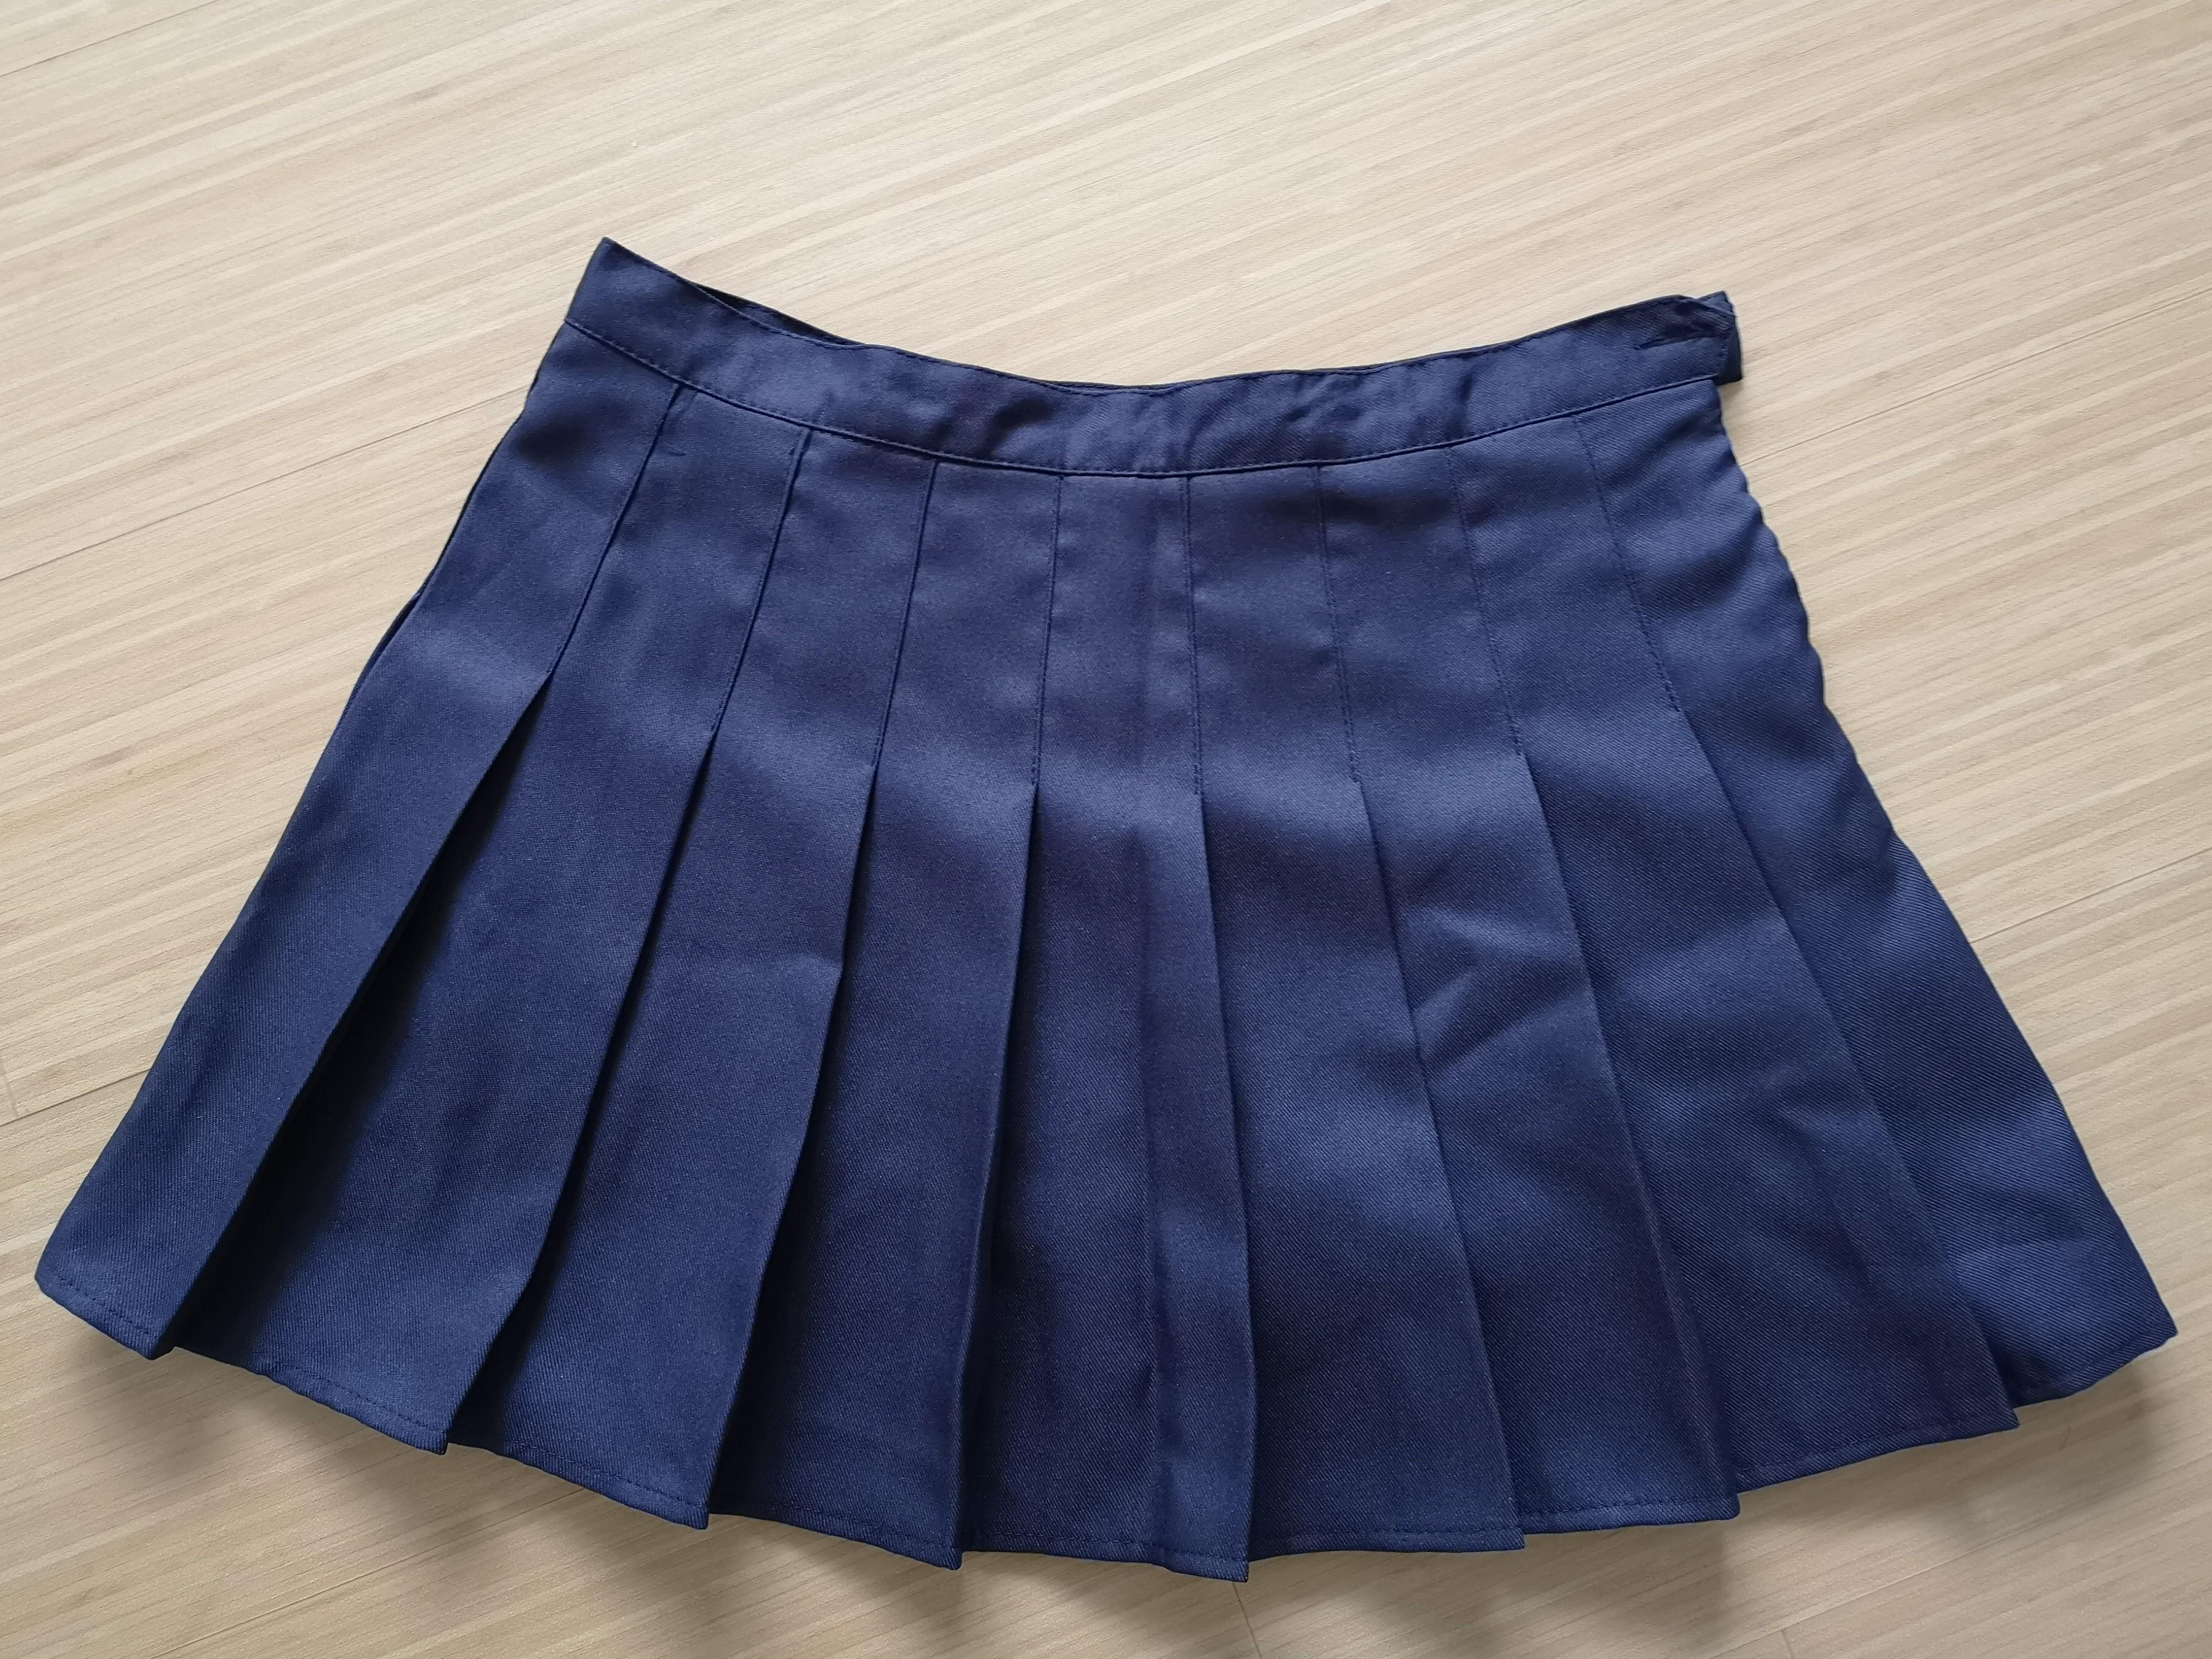 Plus Size A Line Pleated Skirt Tennis Skort Women S Fashion Clothes Pants Jeans Shorts On Carousell